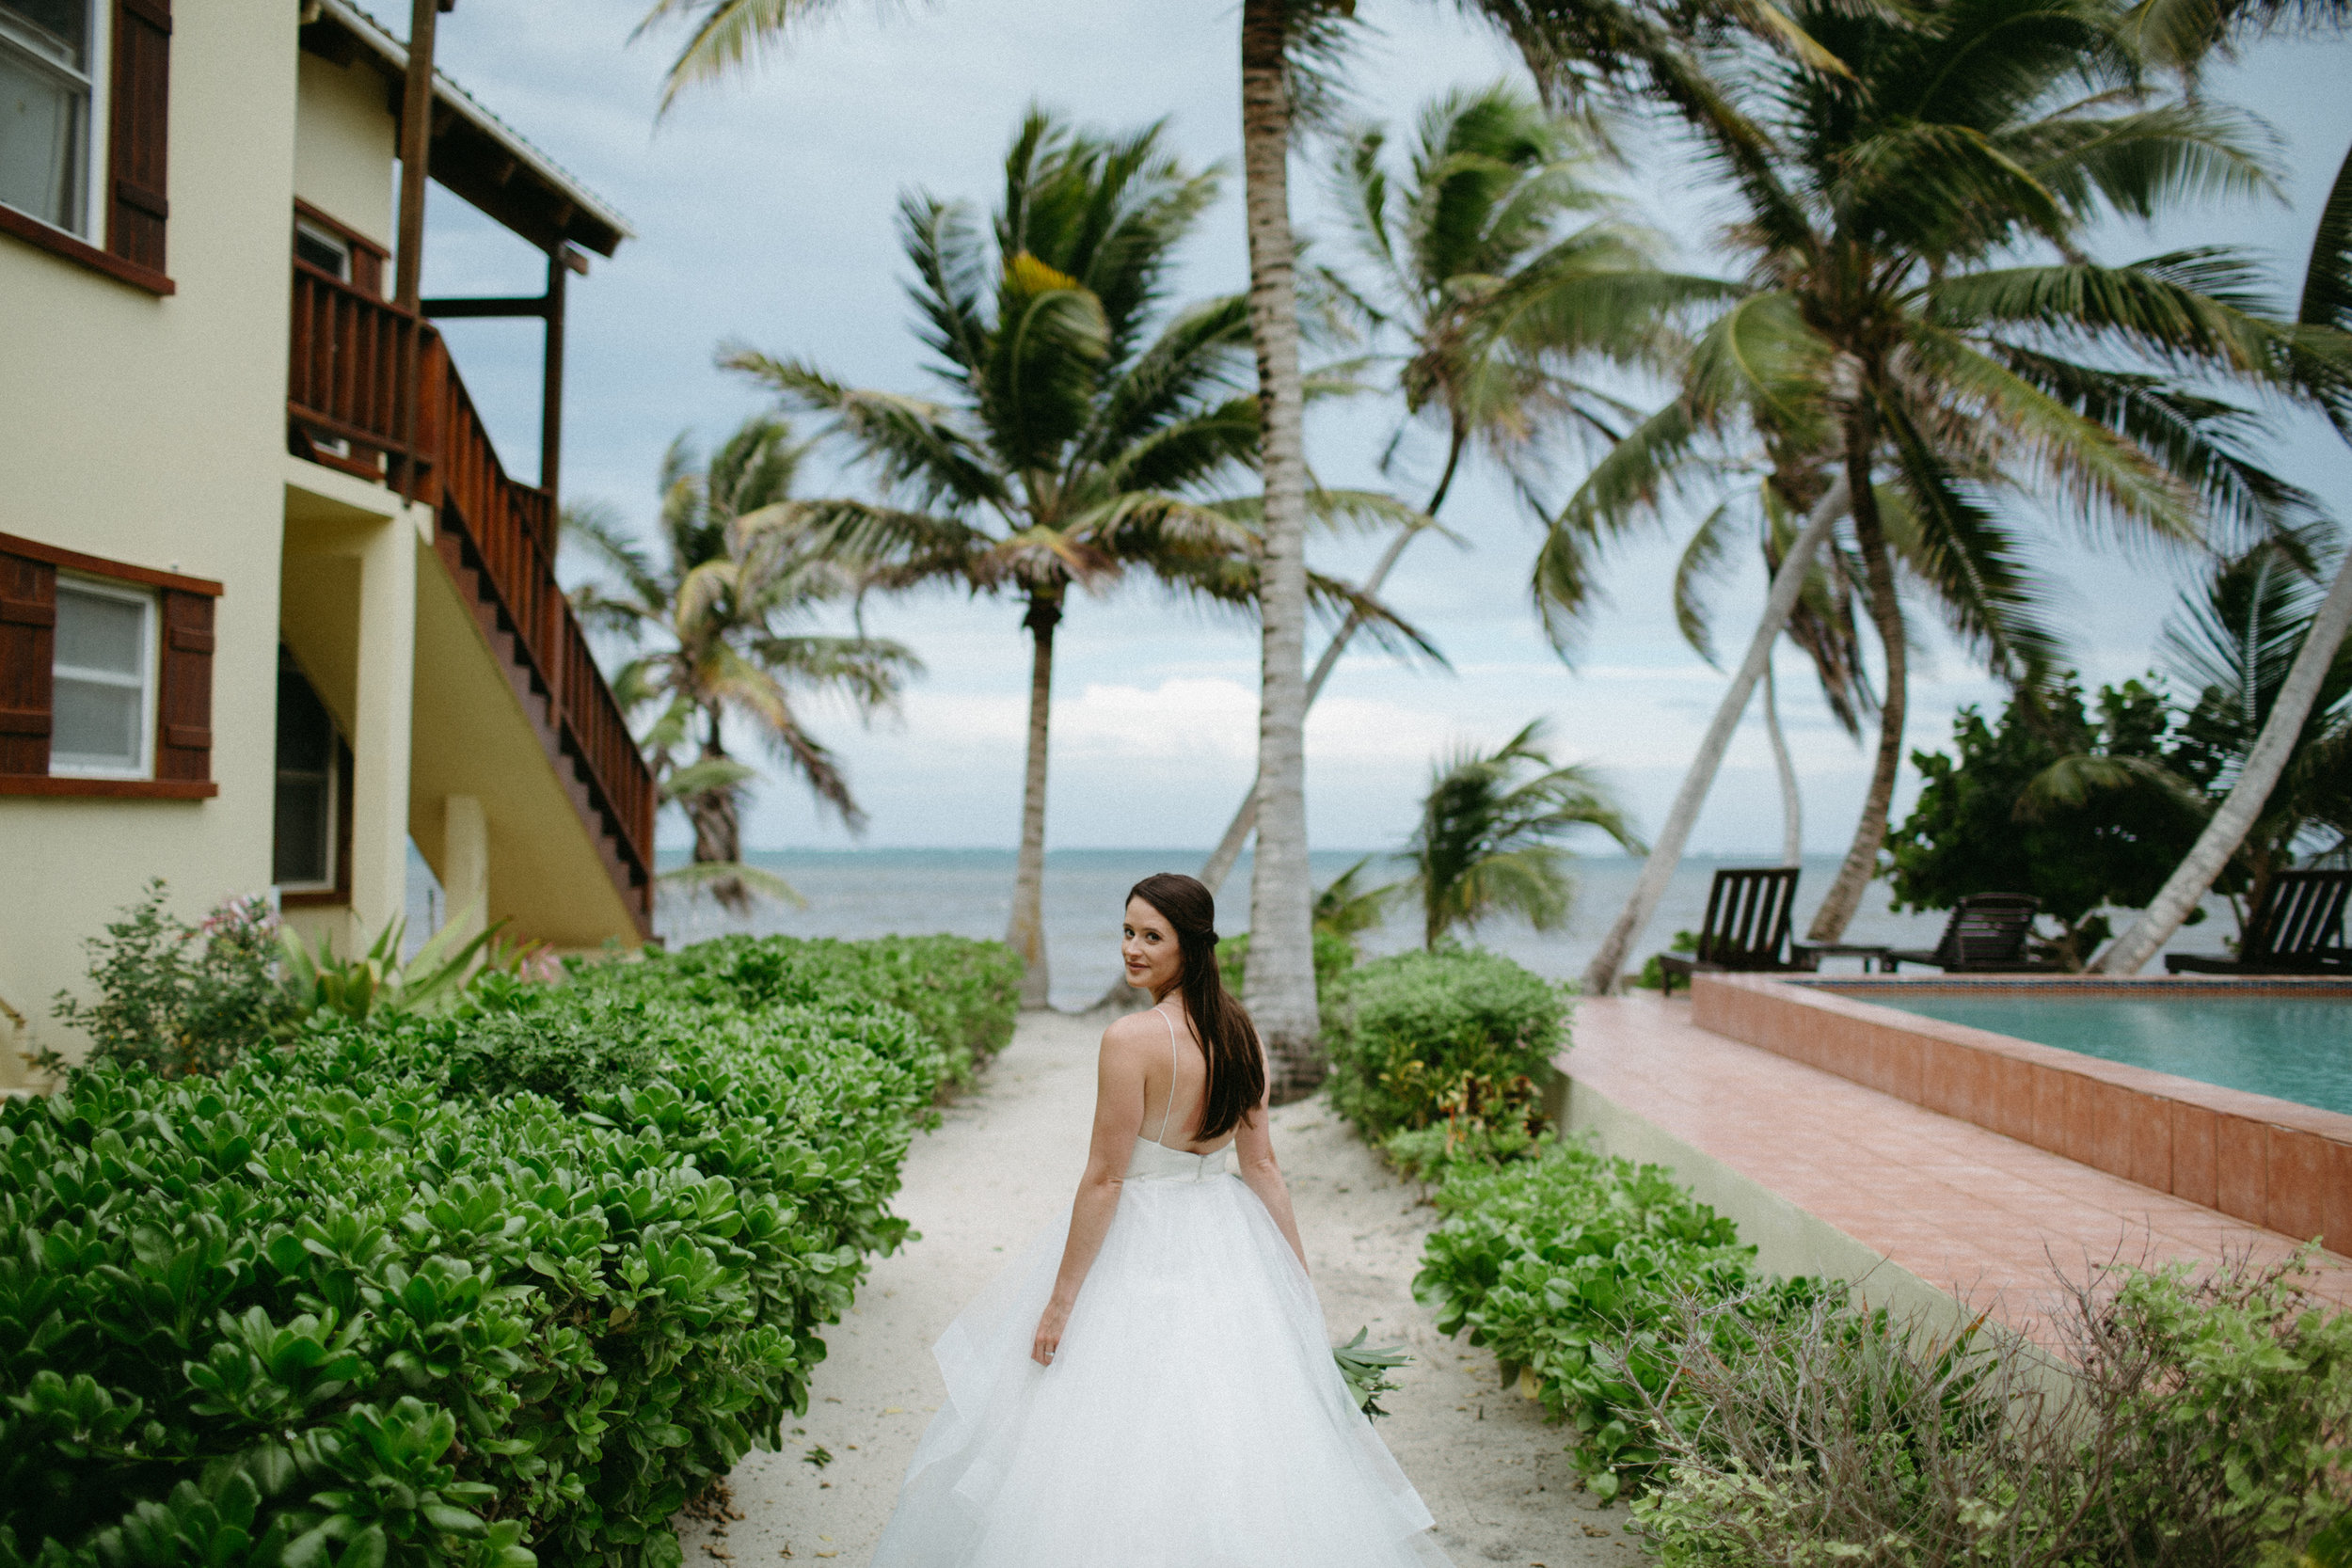 san-pescador-belize-wedding-christinemariephoto-j-k-60.jpg